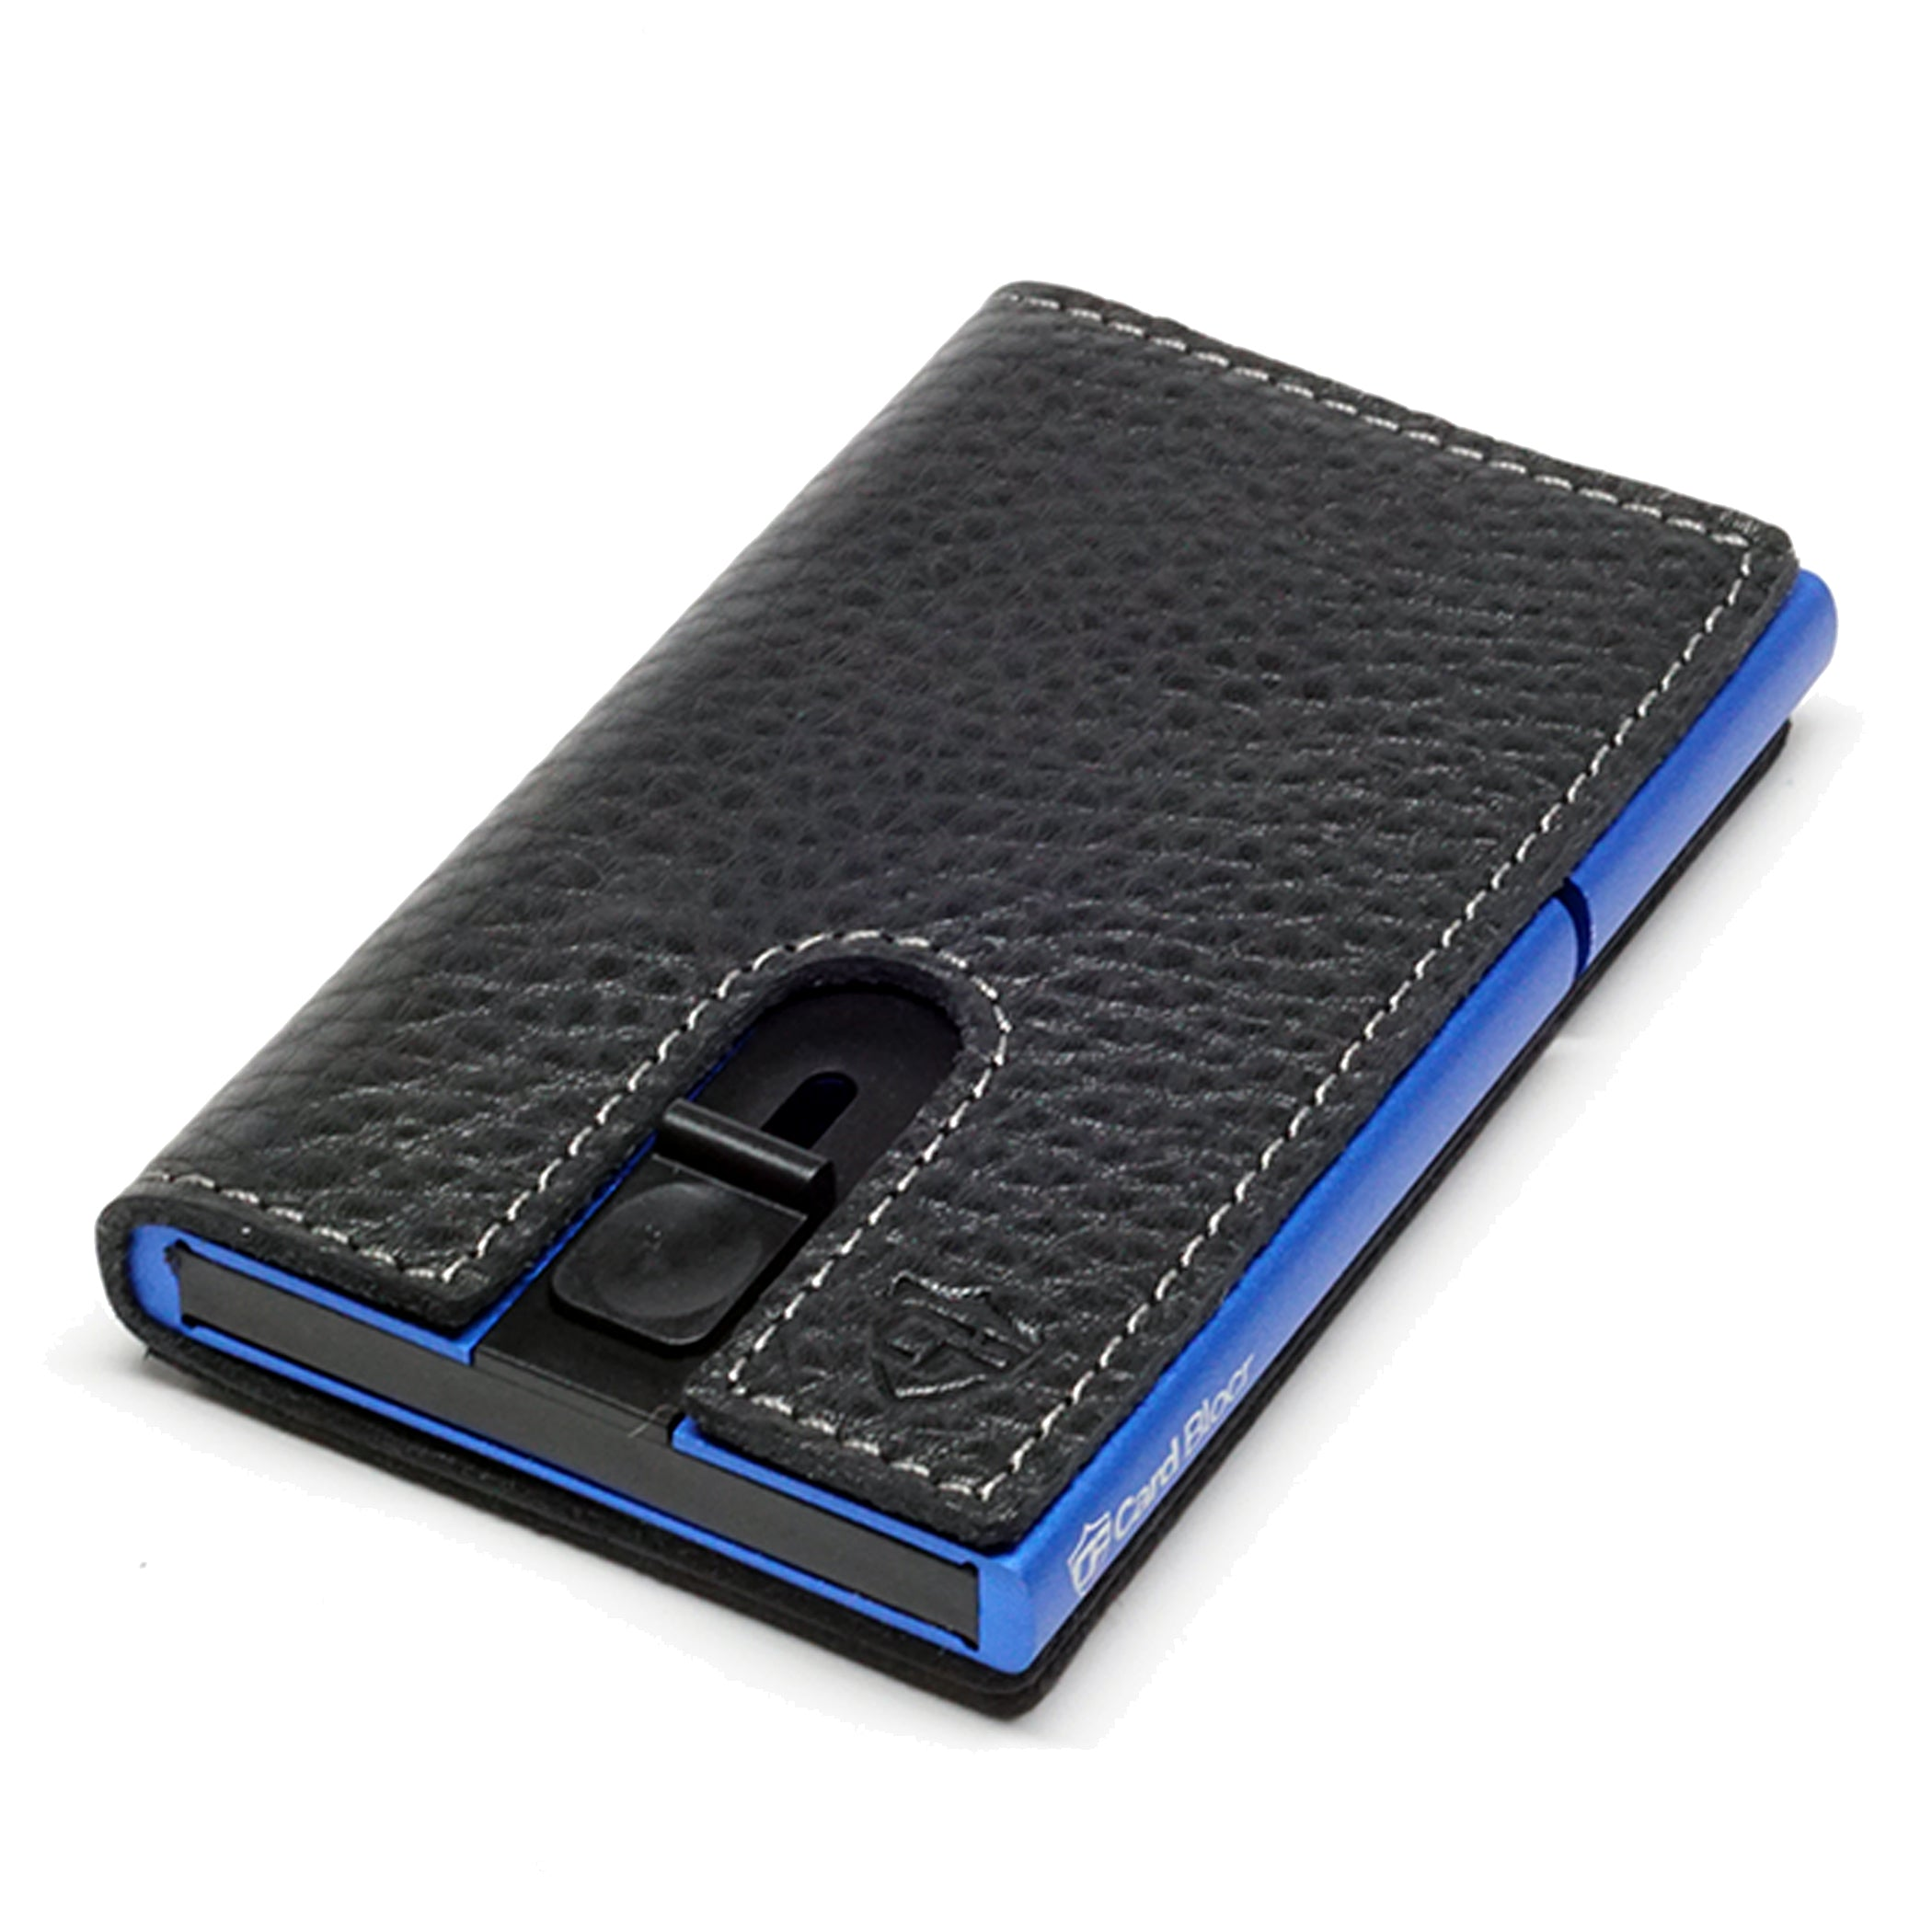 Card Blocr Credit Card Holder in Blue Wrapped in Black Leather | RFID Wallet 45 No Cards